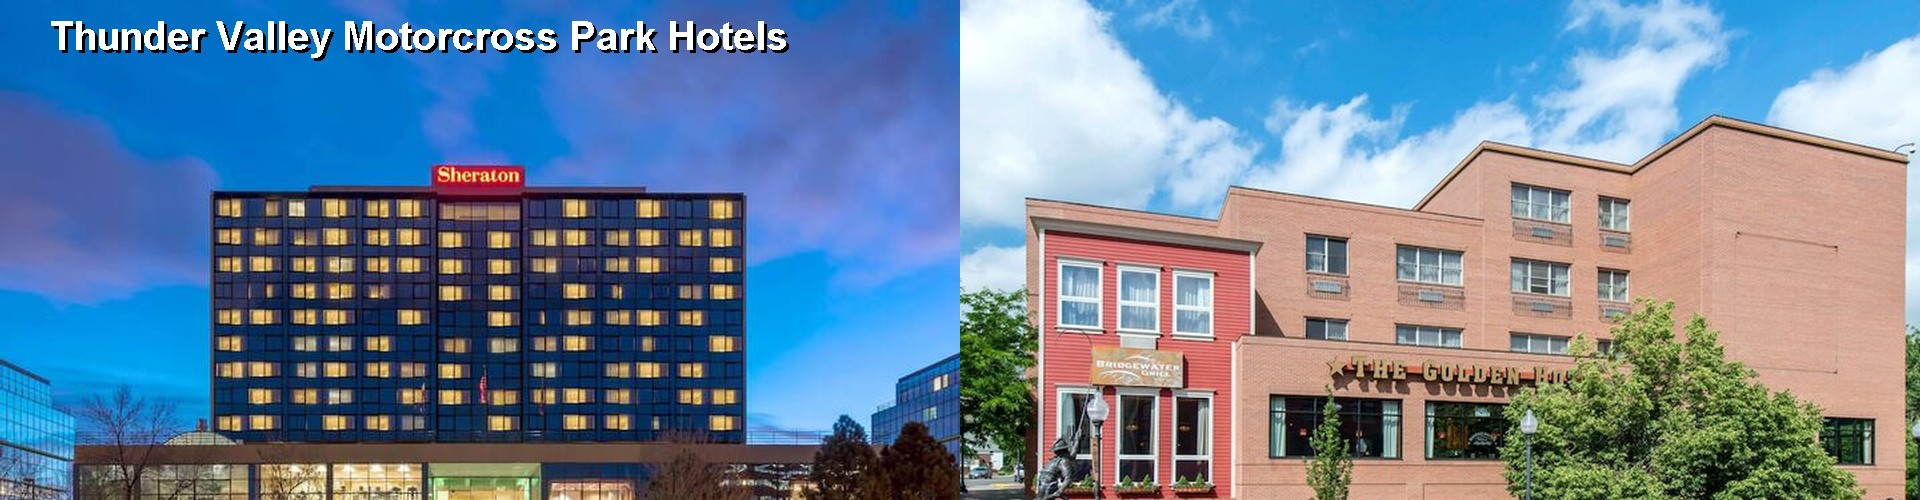 5 Best Hotels near Thunder Valley Motorcross Park